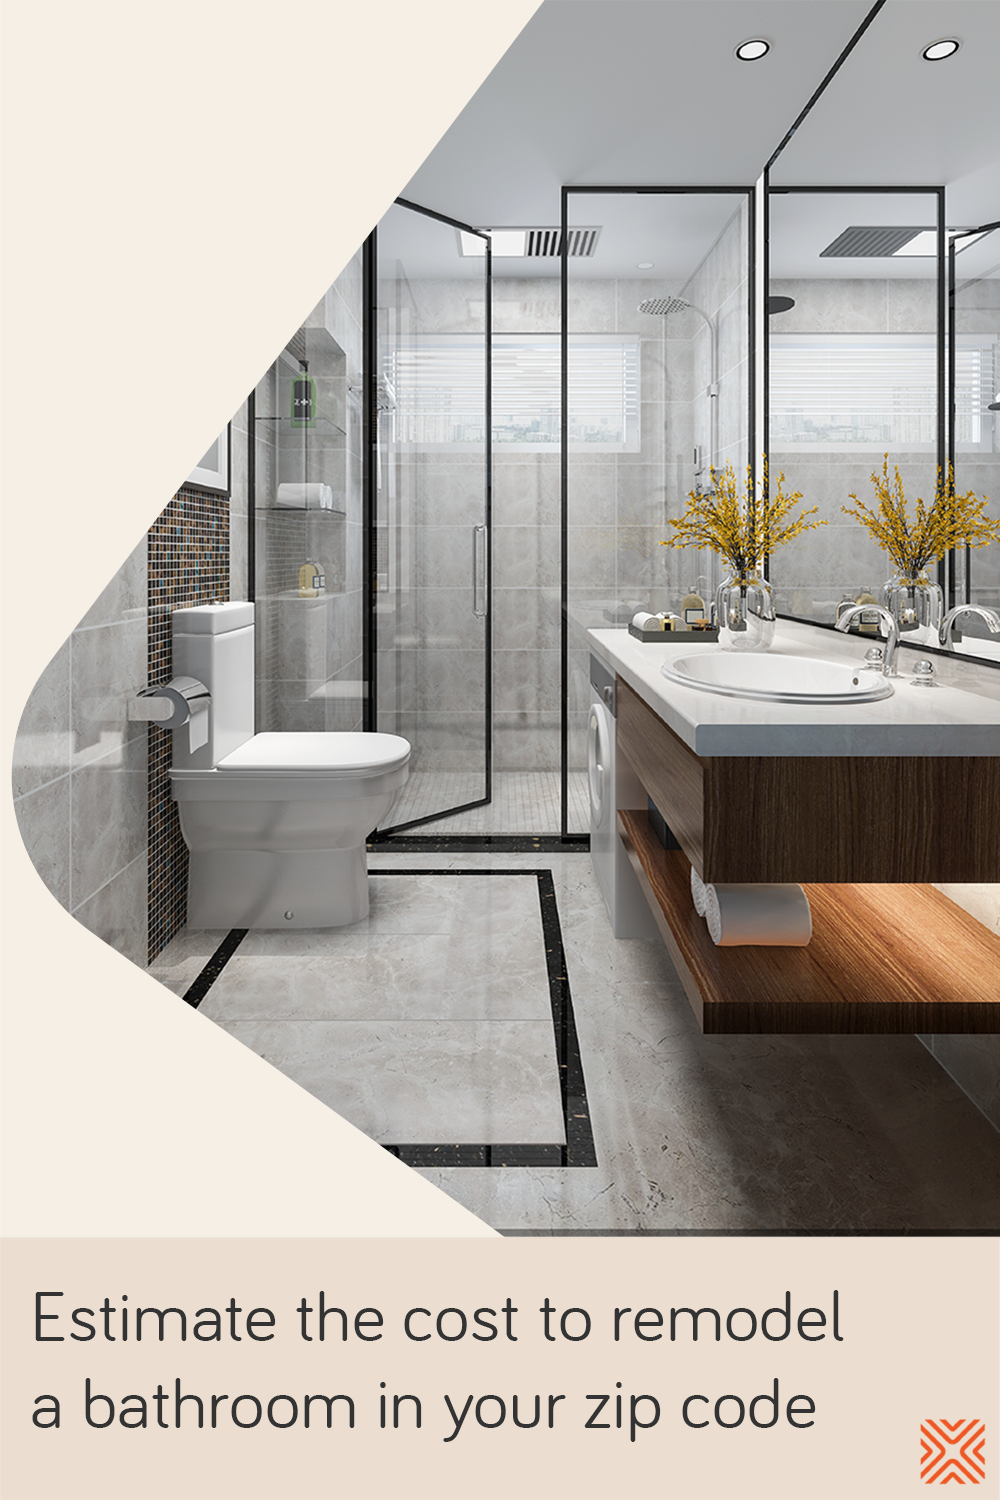 Renovating A Master Bathroom Can Be More Costly Than A Regular Bathroom Renovation That S Why Bathroom Renovation Cost Bathrooms Remodel Bathroom Remodel Cost